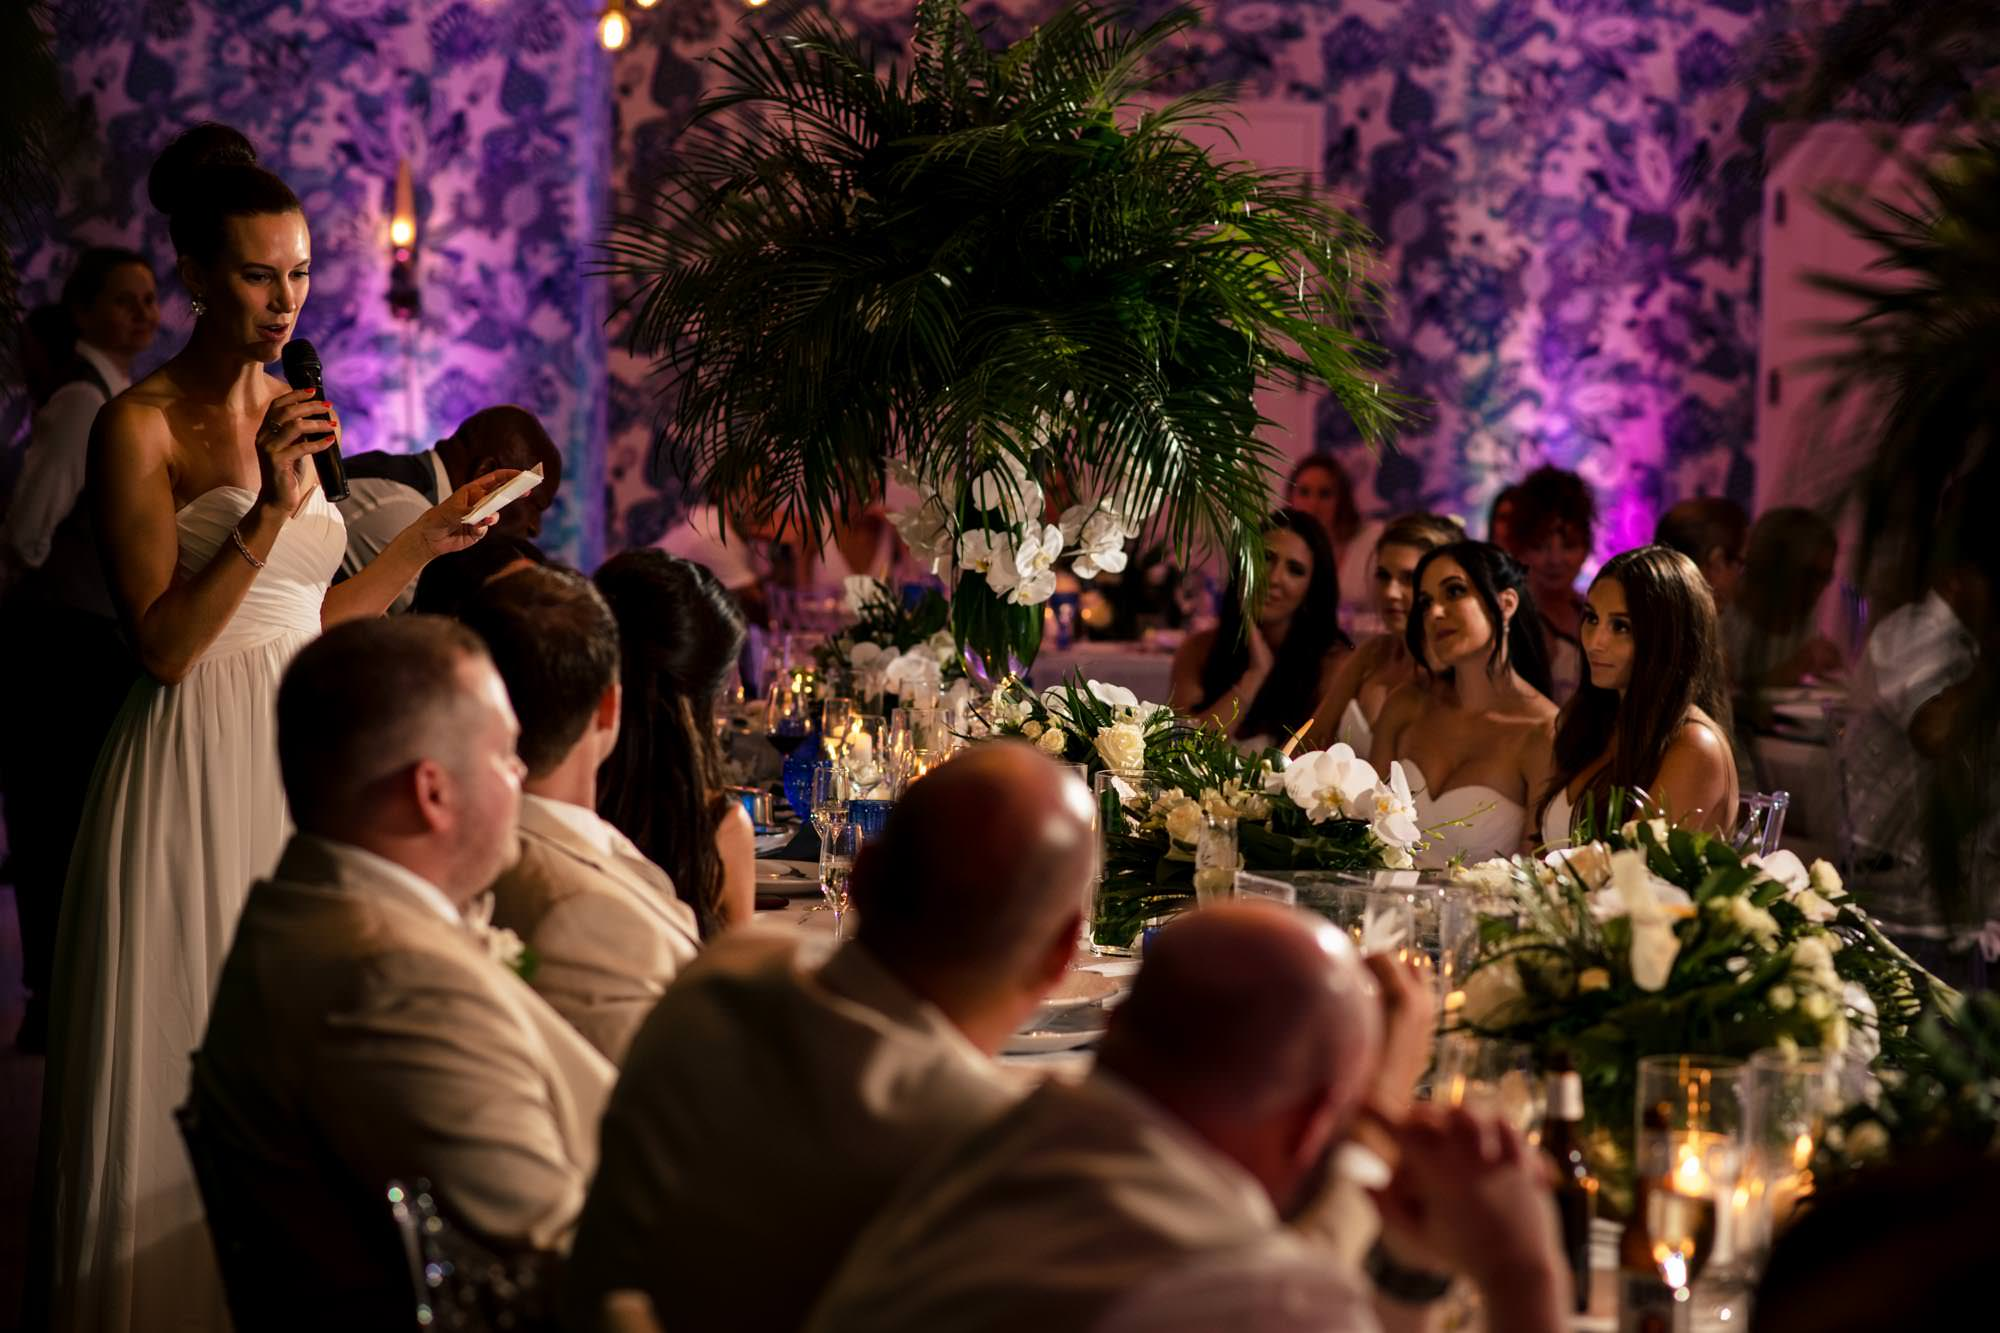 Group of people looking at the bride and groom at a wedding reception